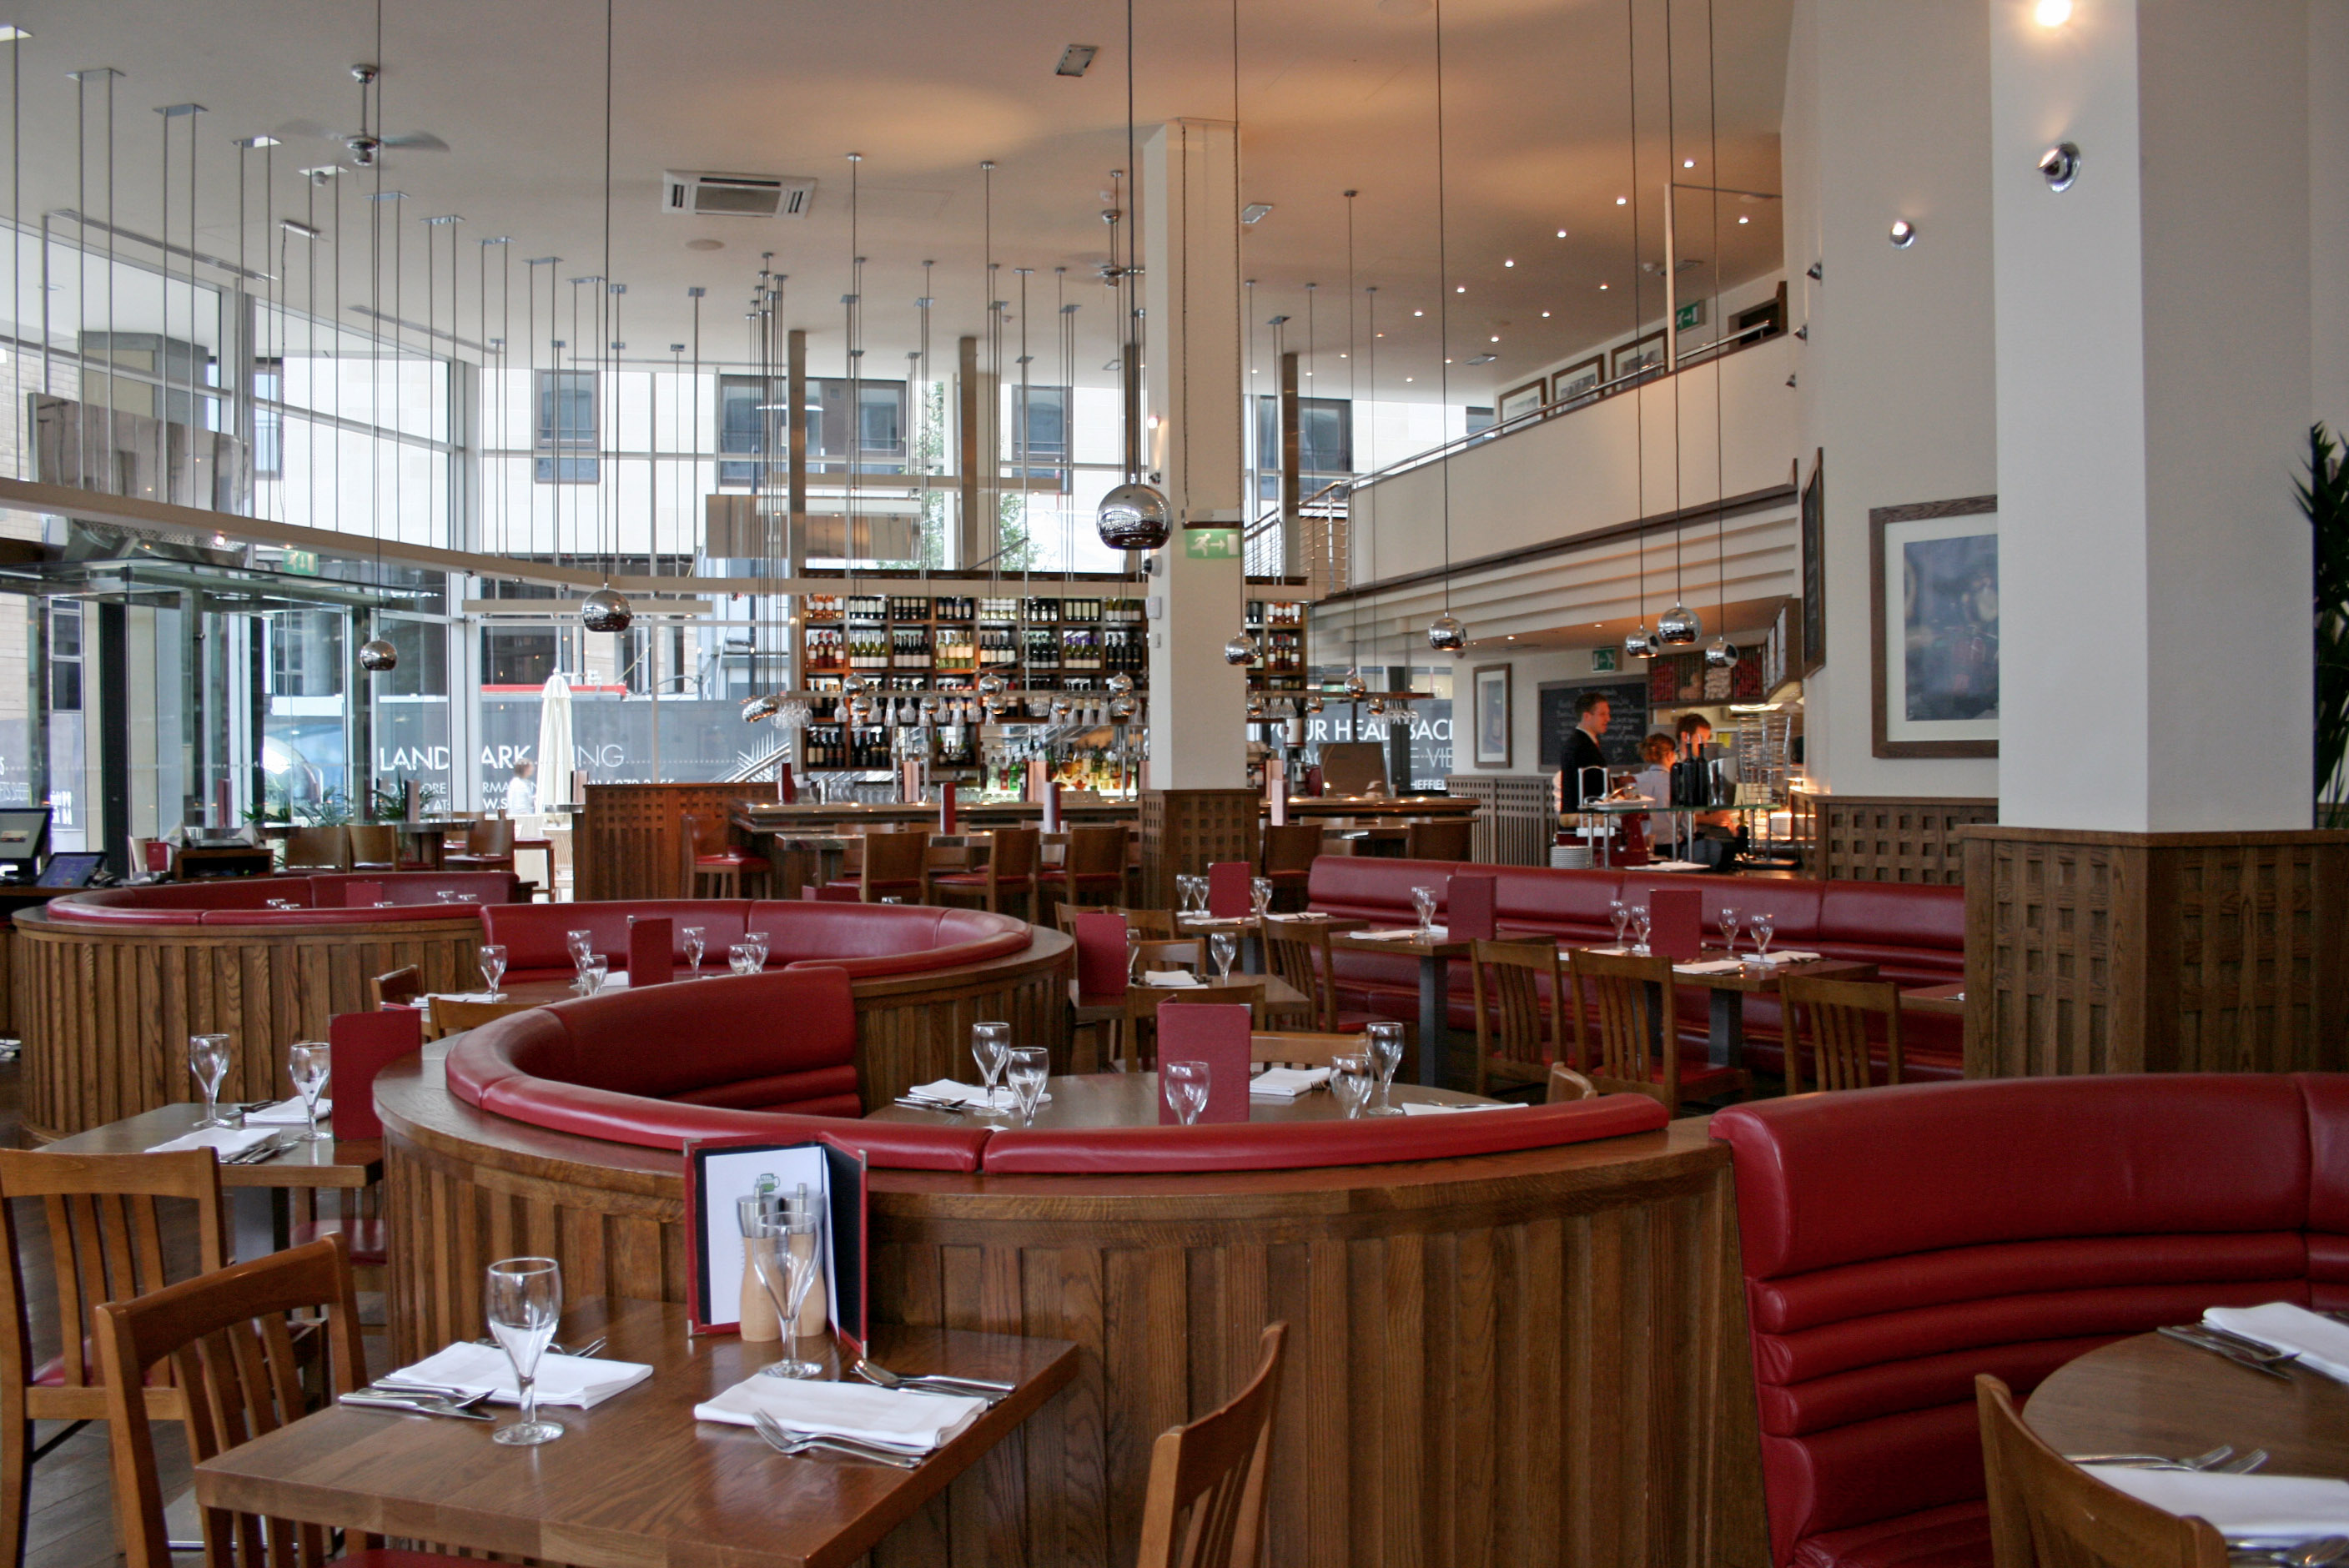 Sheffield Piccolino Restaurant & Bar